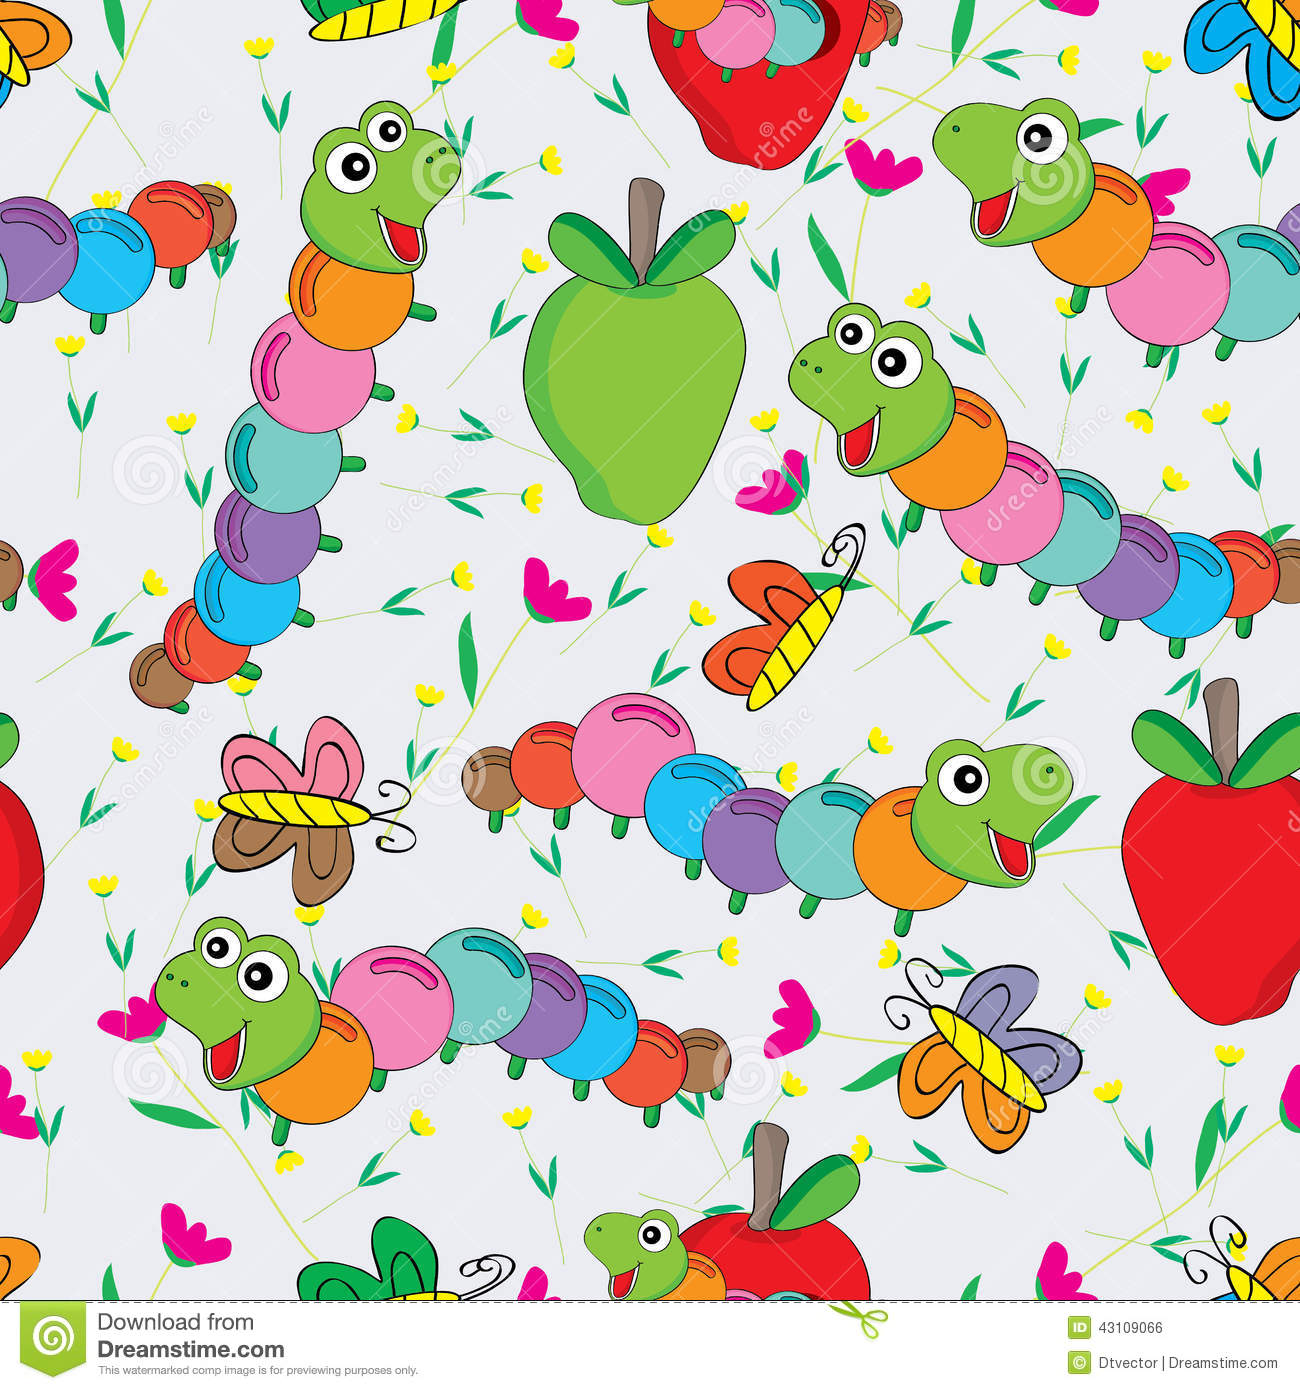 Worm Butterfly Flower Colorful Seamless Pattern Stock